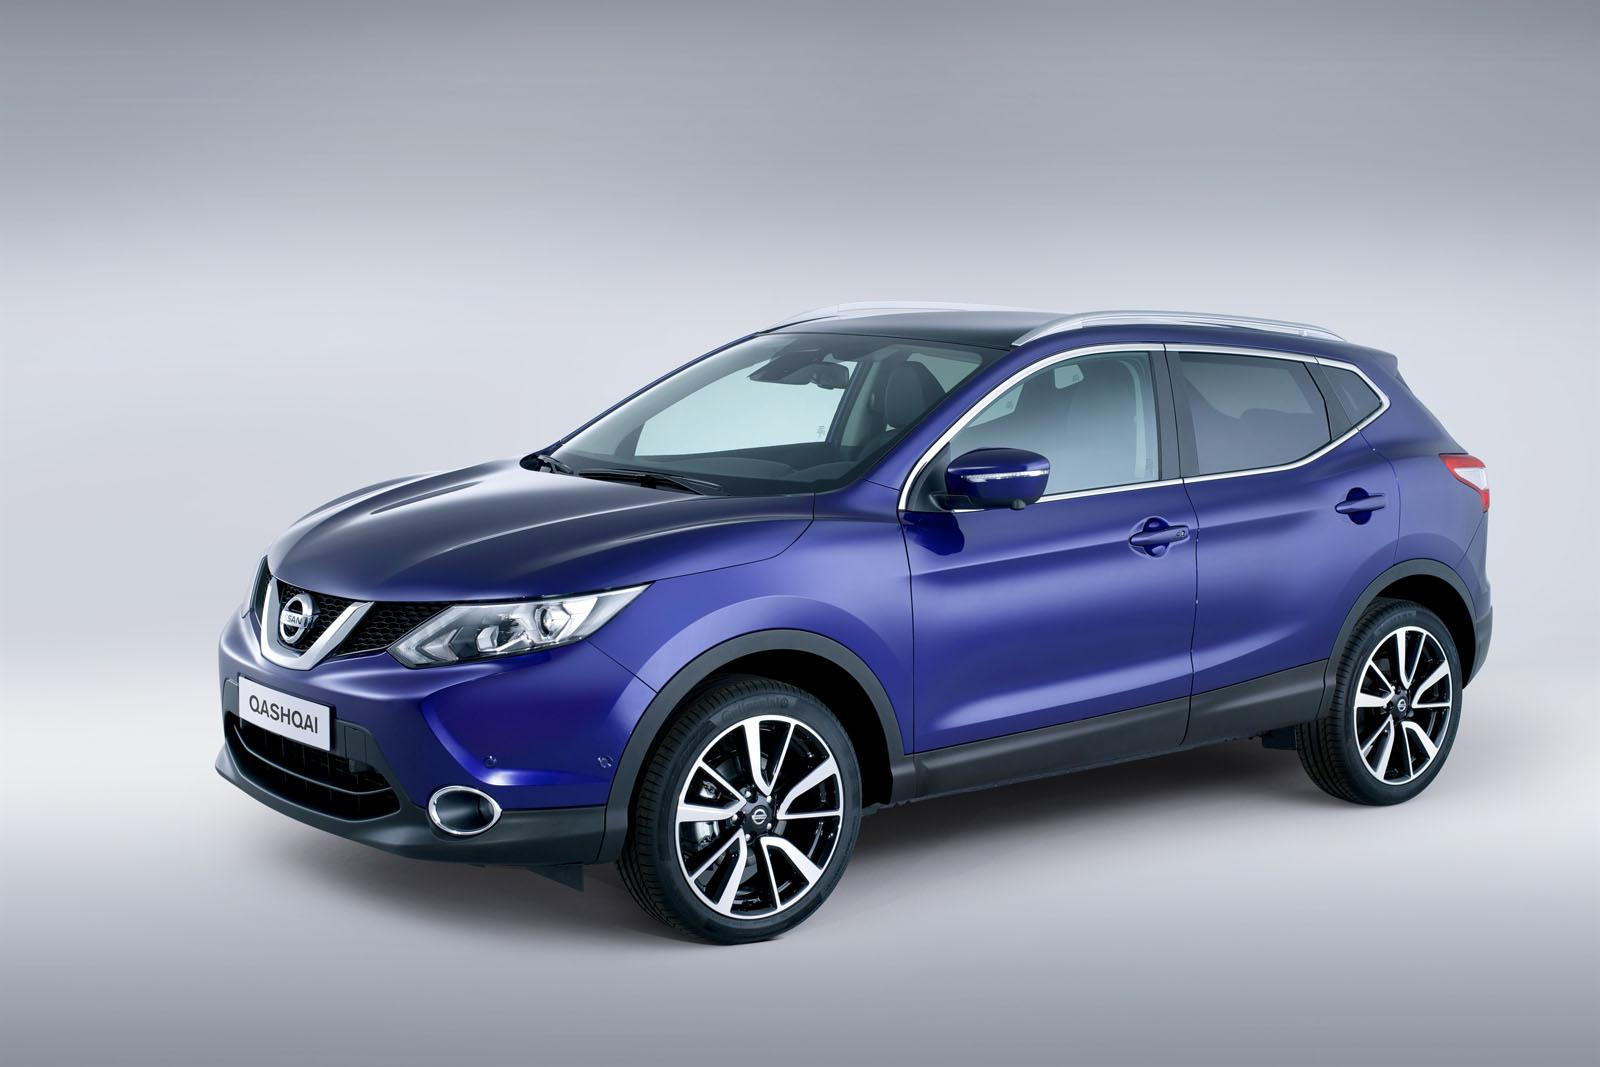 2014 nissan qashqai blue front quarter. Black Bedroom Furniture Sets. Home Design Ideas